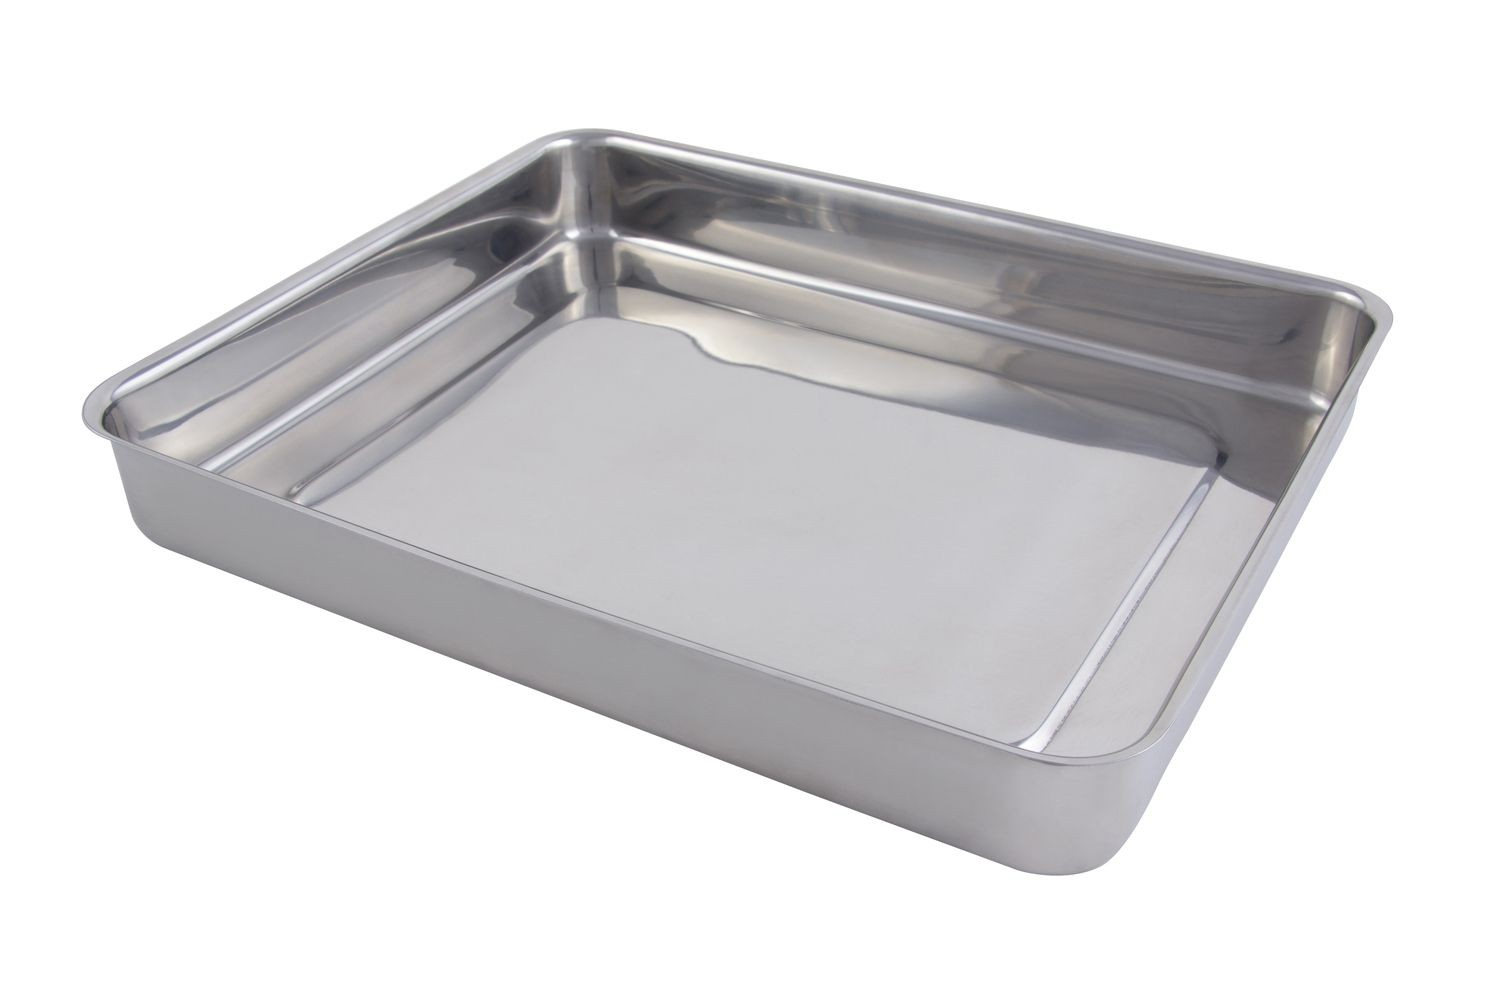 Bon Chef 60017 Cucina Large Stainless Steel Food Pan, 5 Qt.